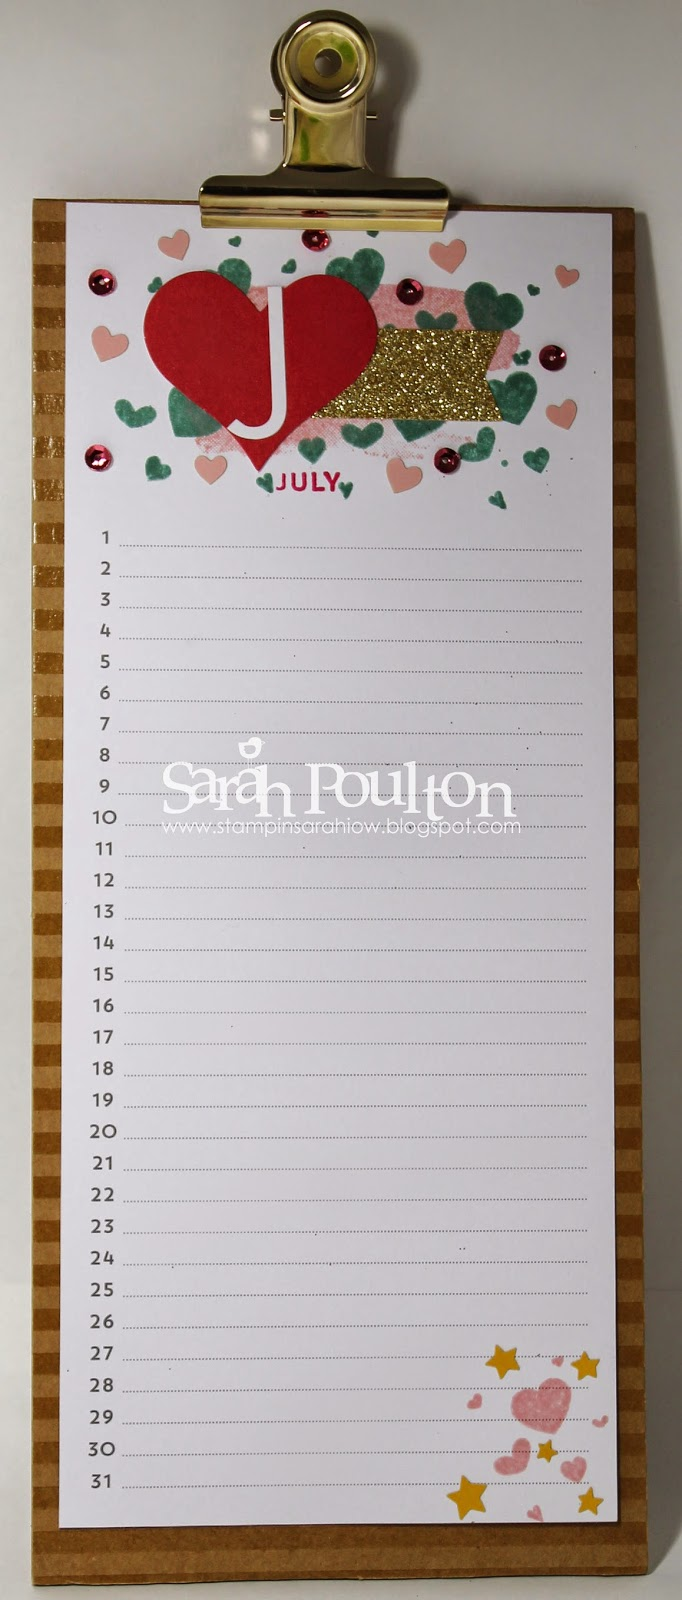 Calendar Kit Ideas : Stampin sarah perpetual birthday calendar kit part